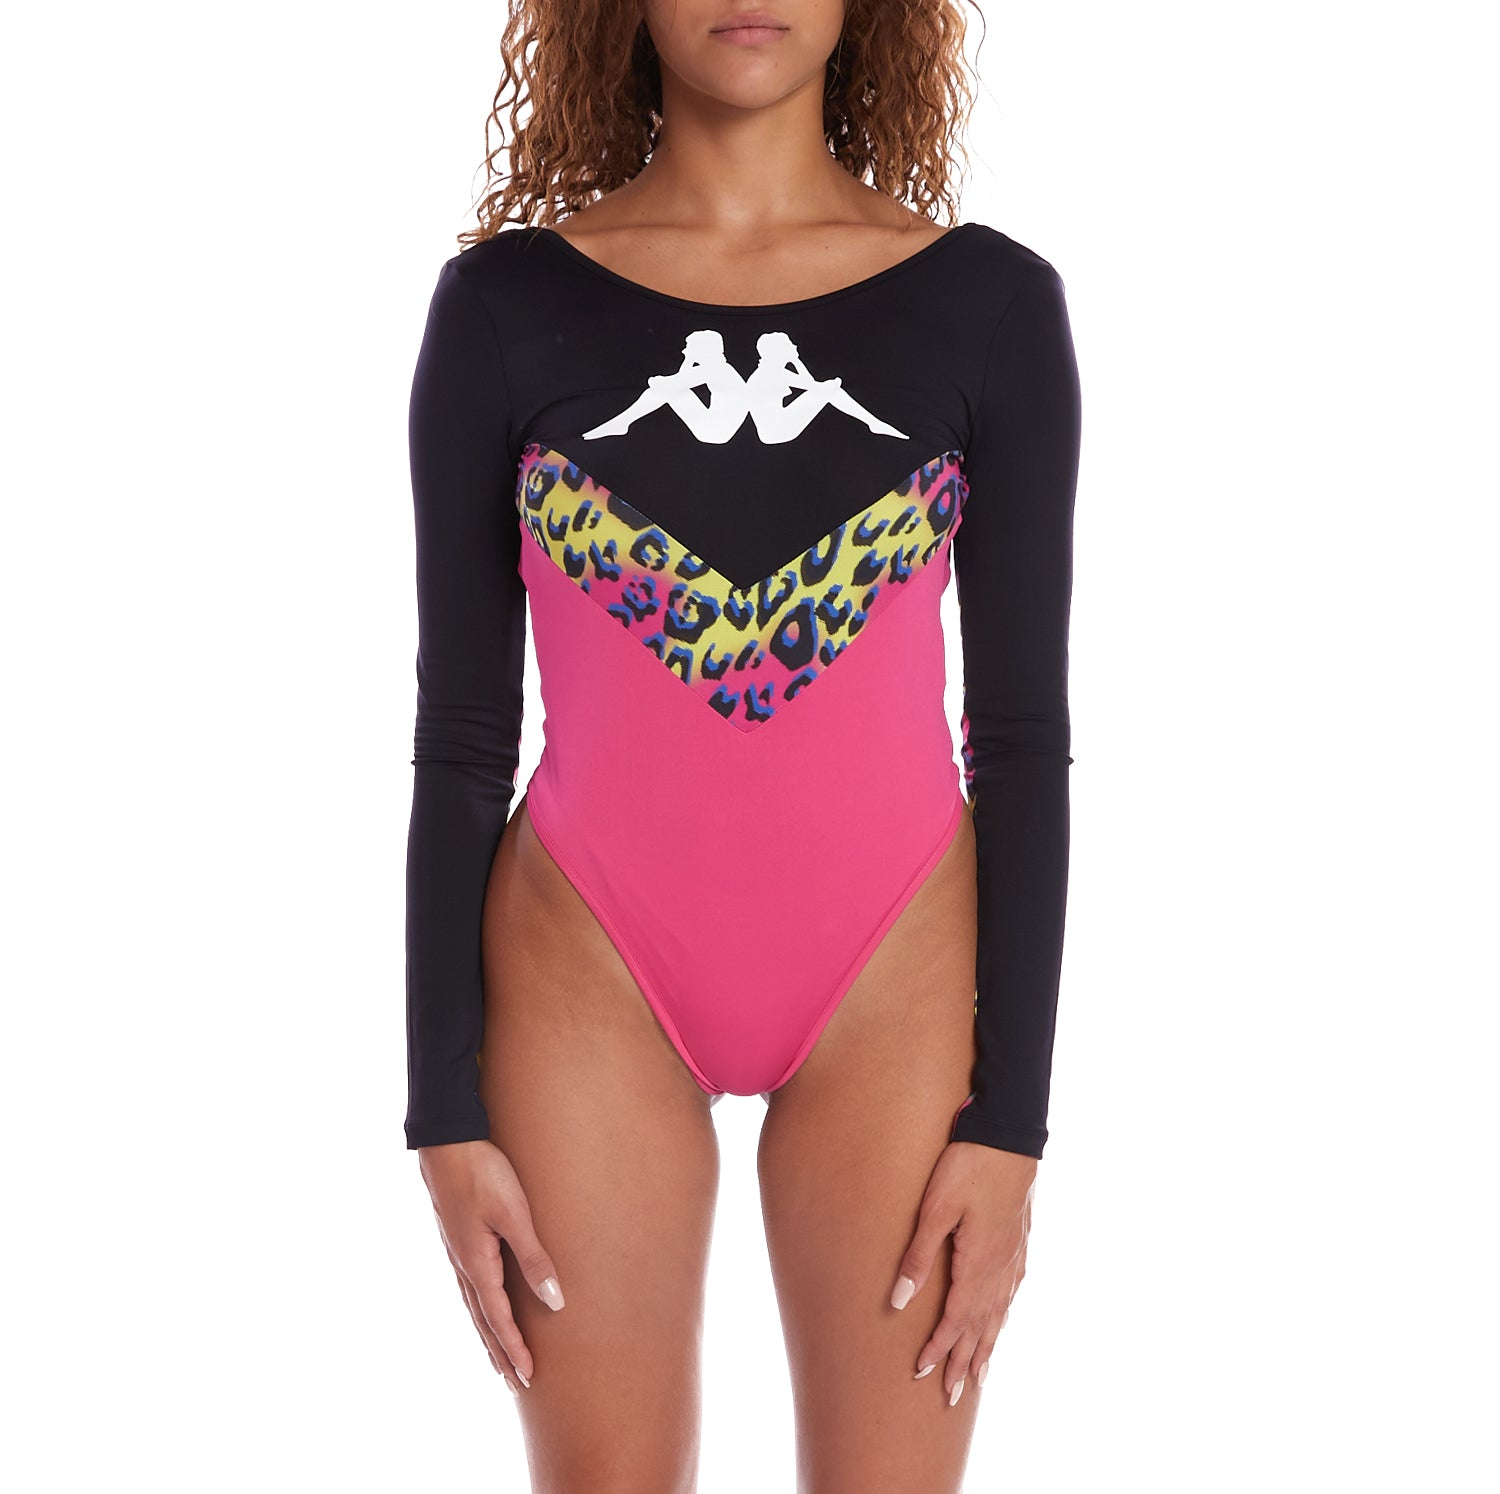 Kappa Authentic Daiana Graphik Bodysuit - Black Graphic Cheetah